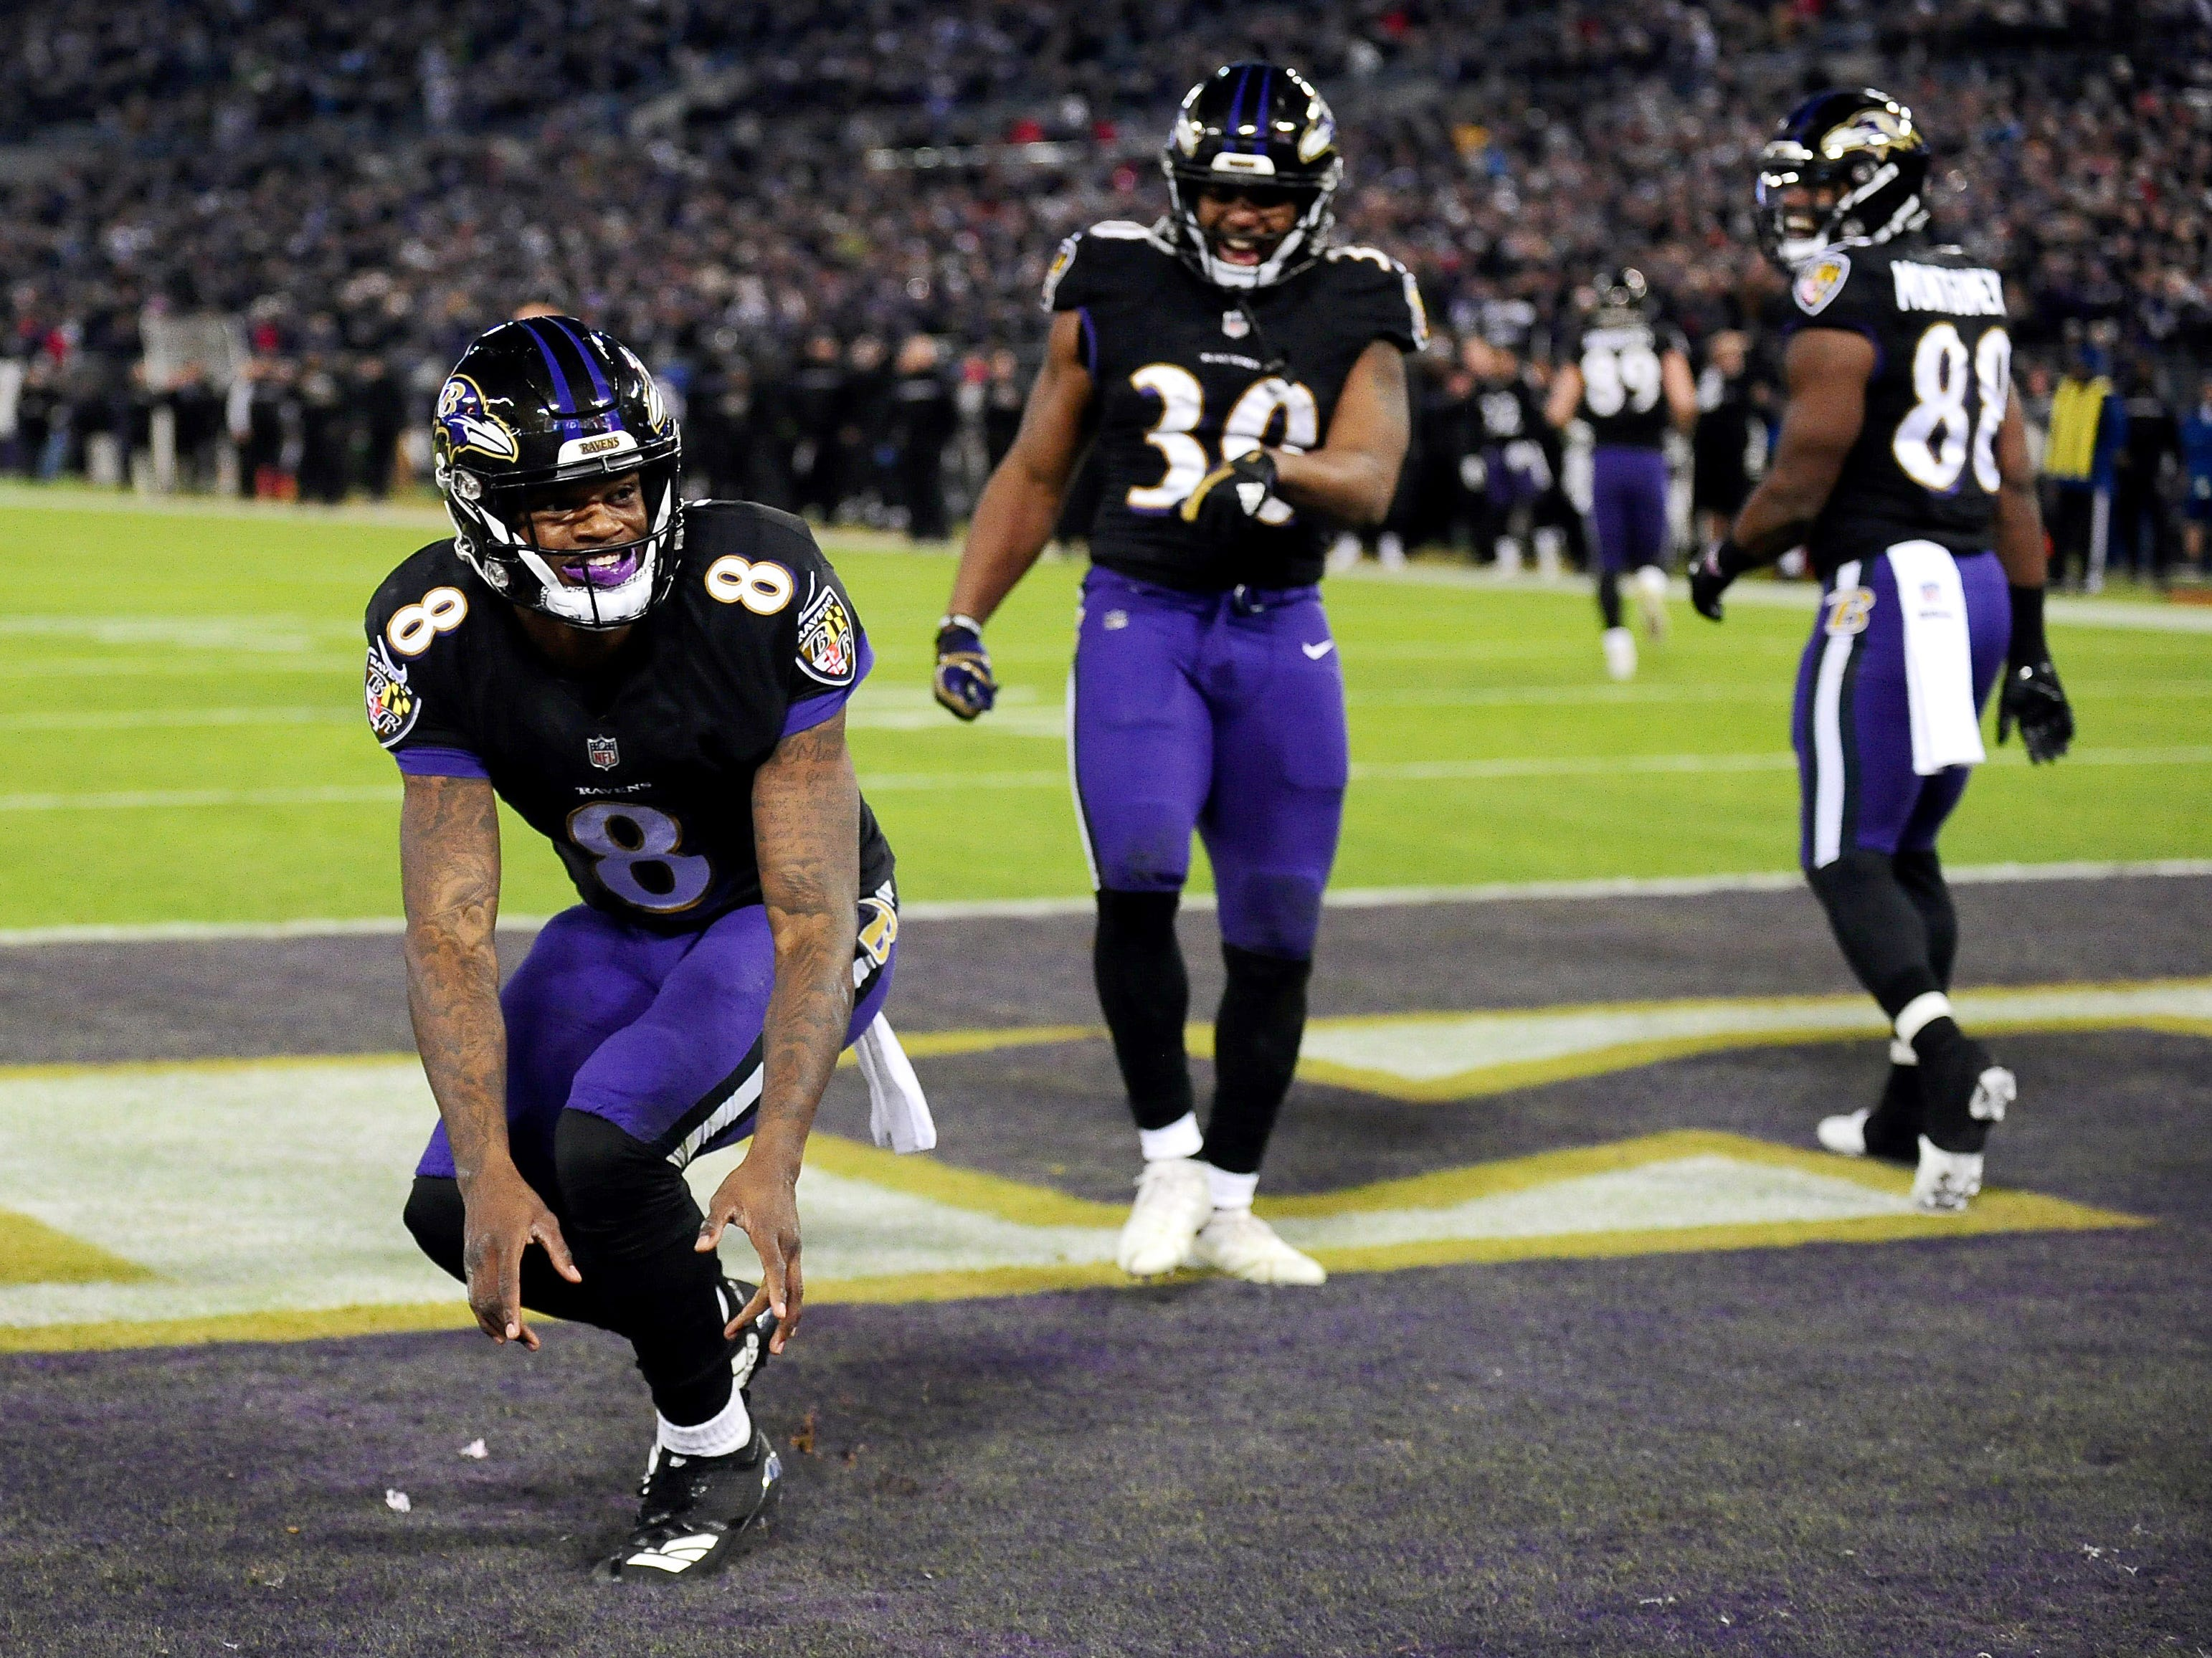 Baltimore Ravens quarterback Lamar Jackson celebrates after scoring a touchdown in the second quarter against the Cleveland Browns at M&T Bank Stadium.